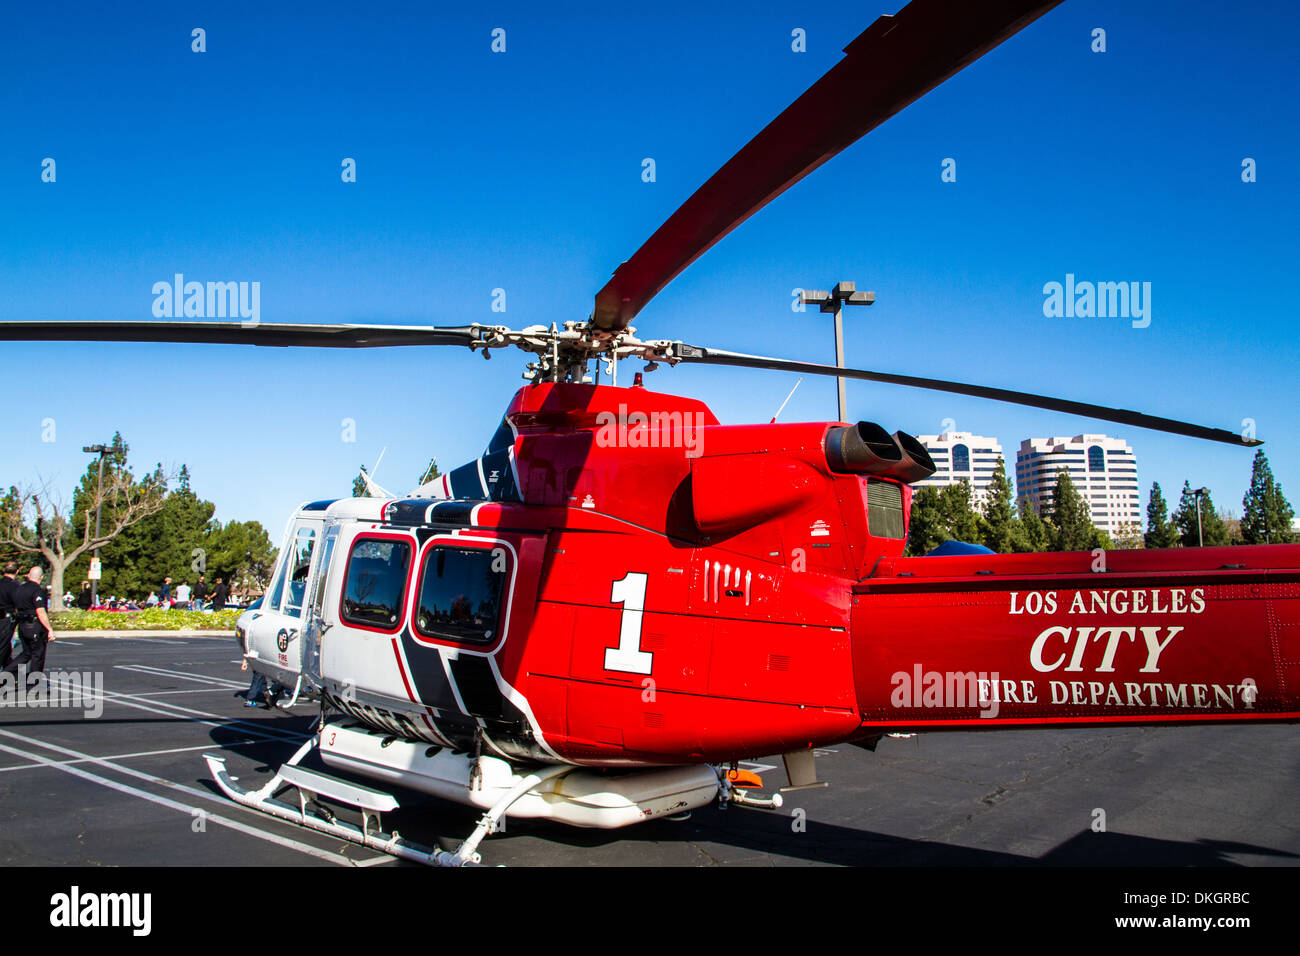 Christiana Fire Department Fire Helicopter